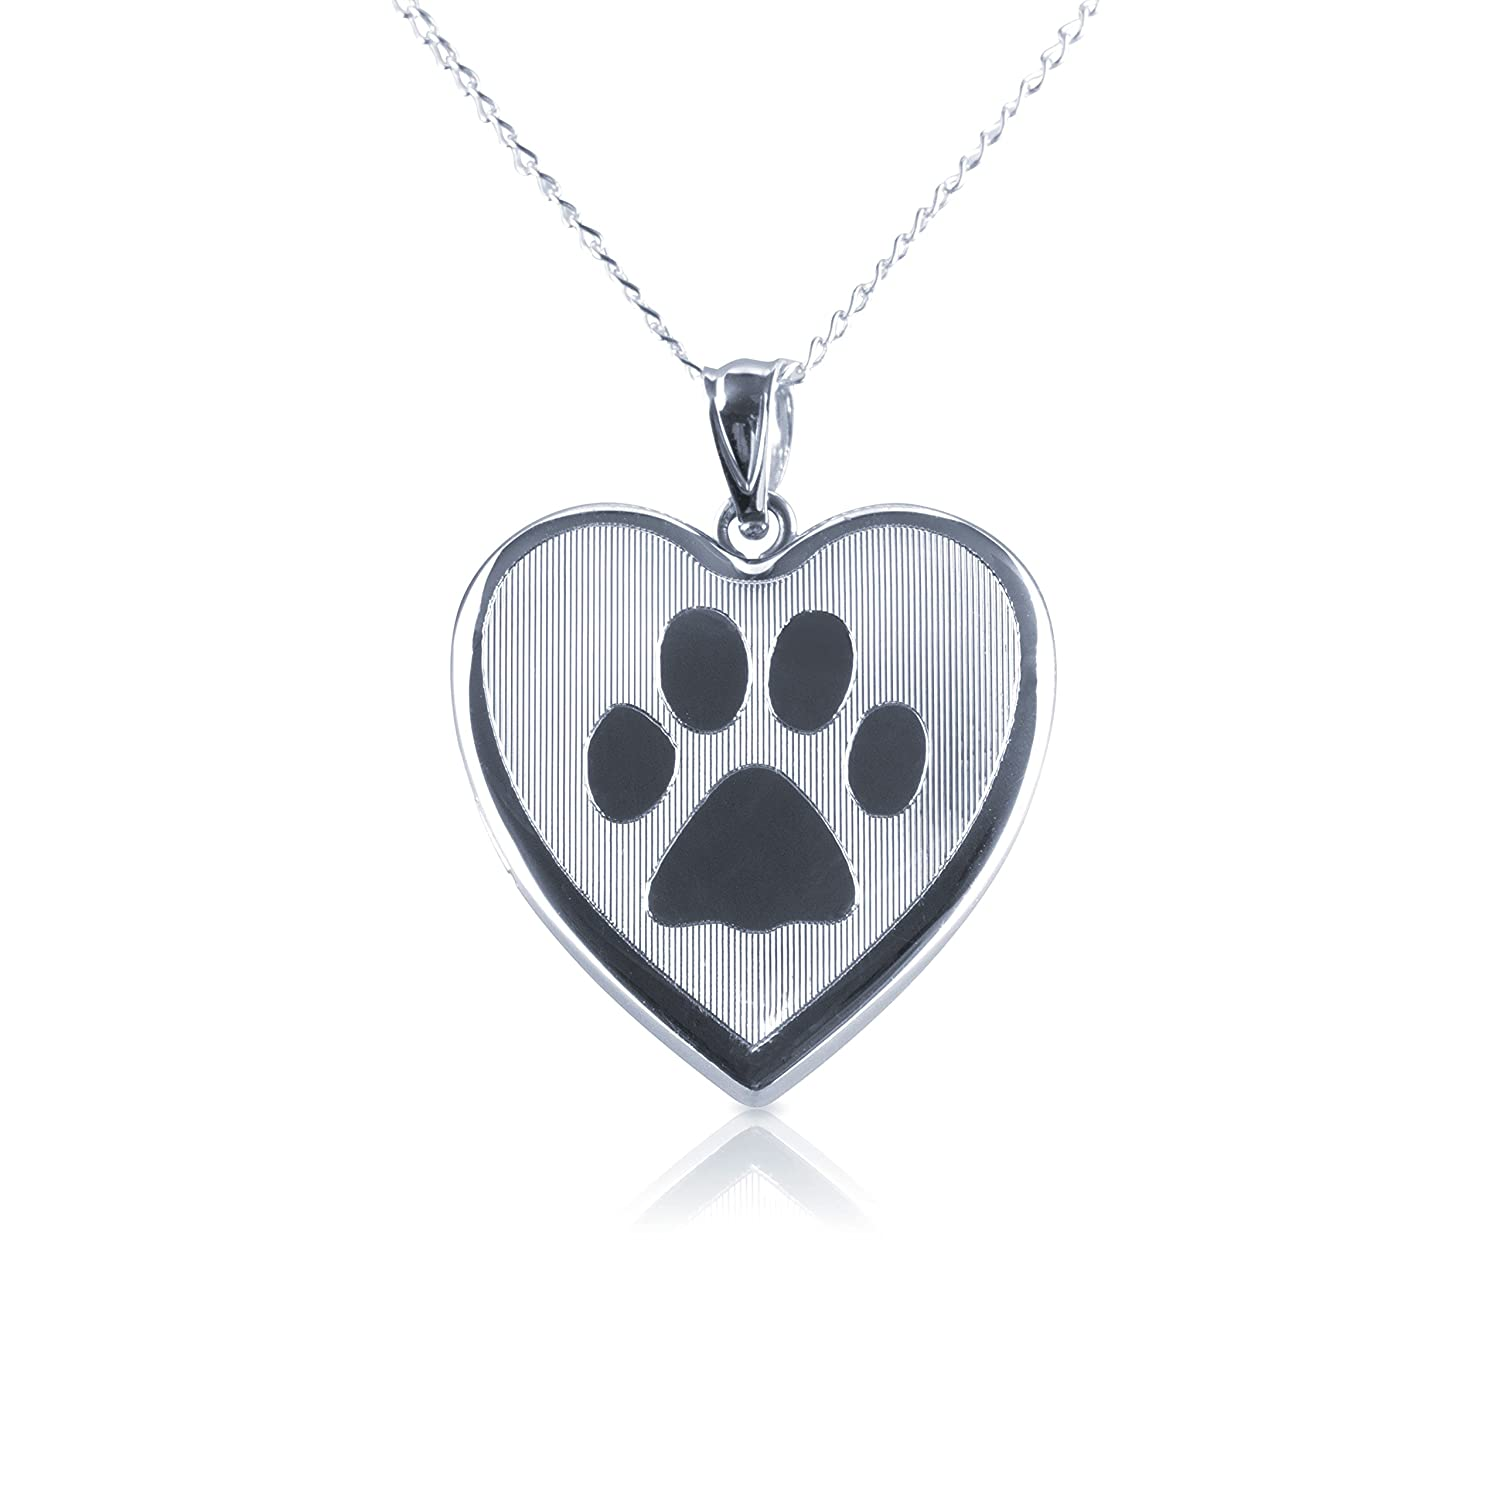 Dog Paw Heart Shape Photo Locket Pendant, Sterling Silver with Necklace Chain by Silver on the Rocks ES Assets UK_B07DFNZ91C